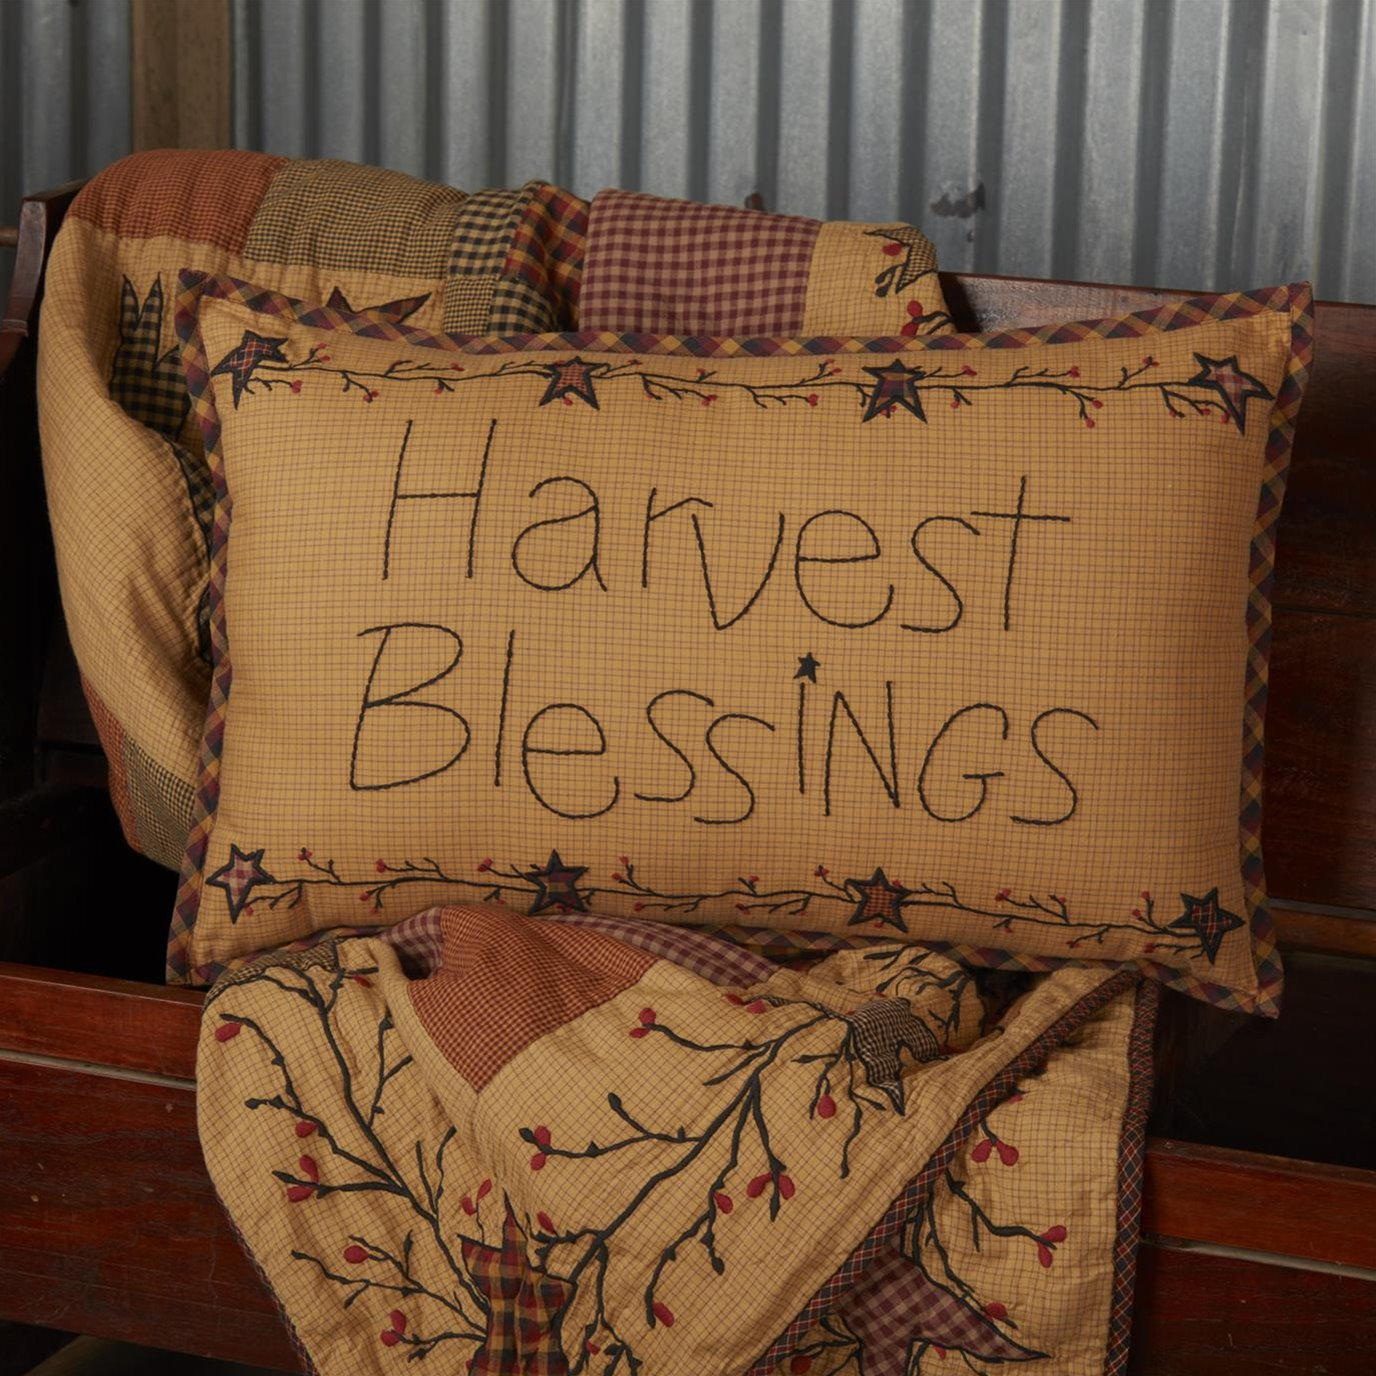 Heritage Farms Harvest Blessings Pillow 14x22